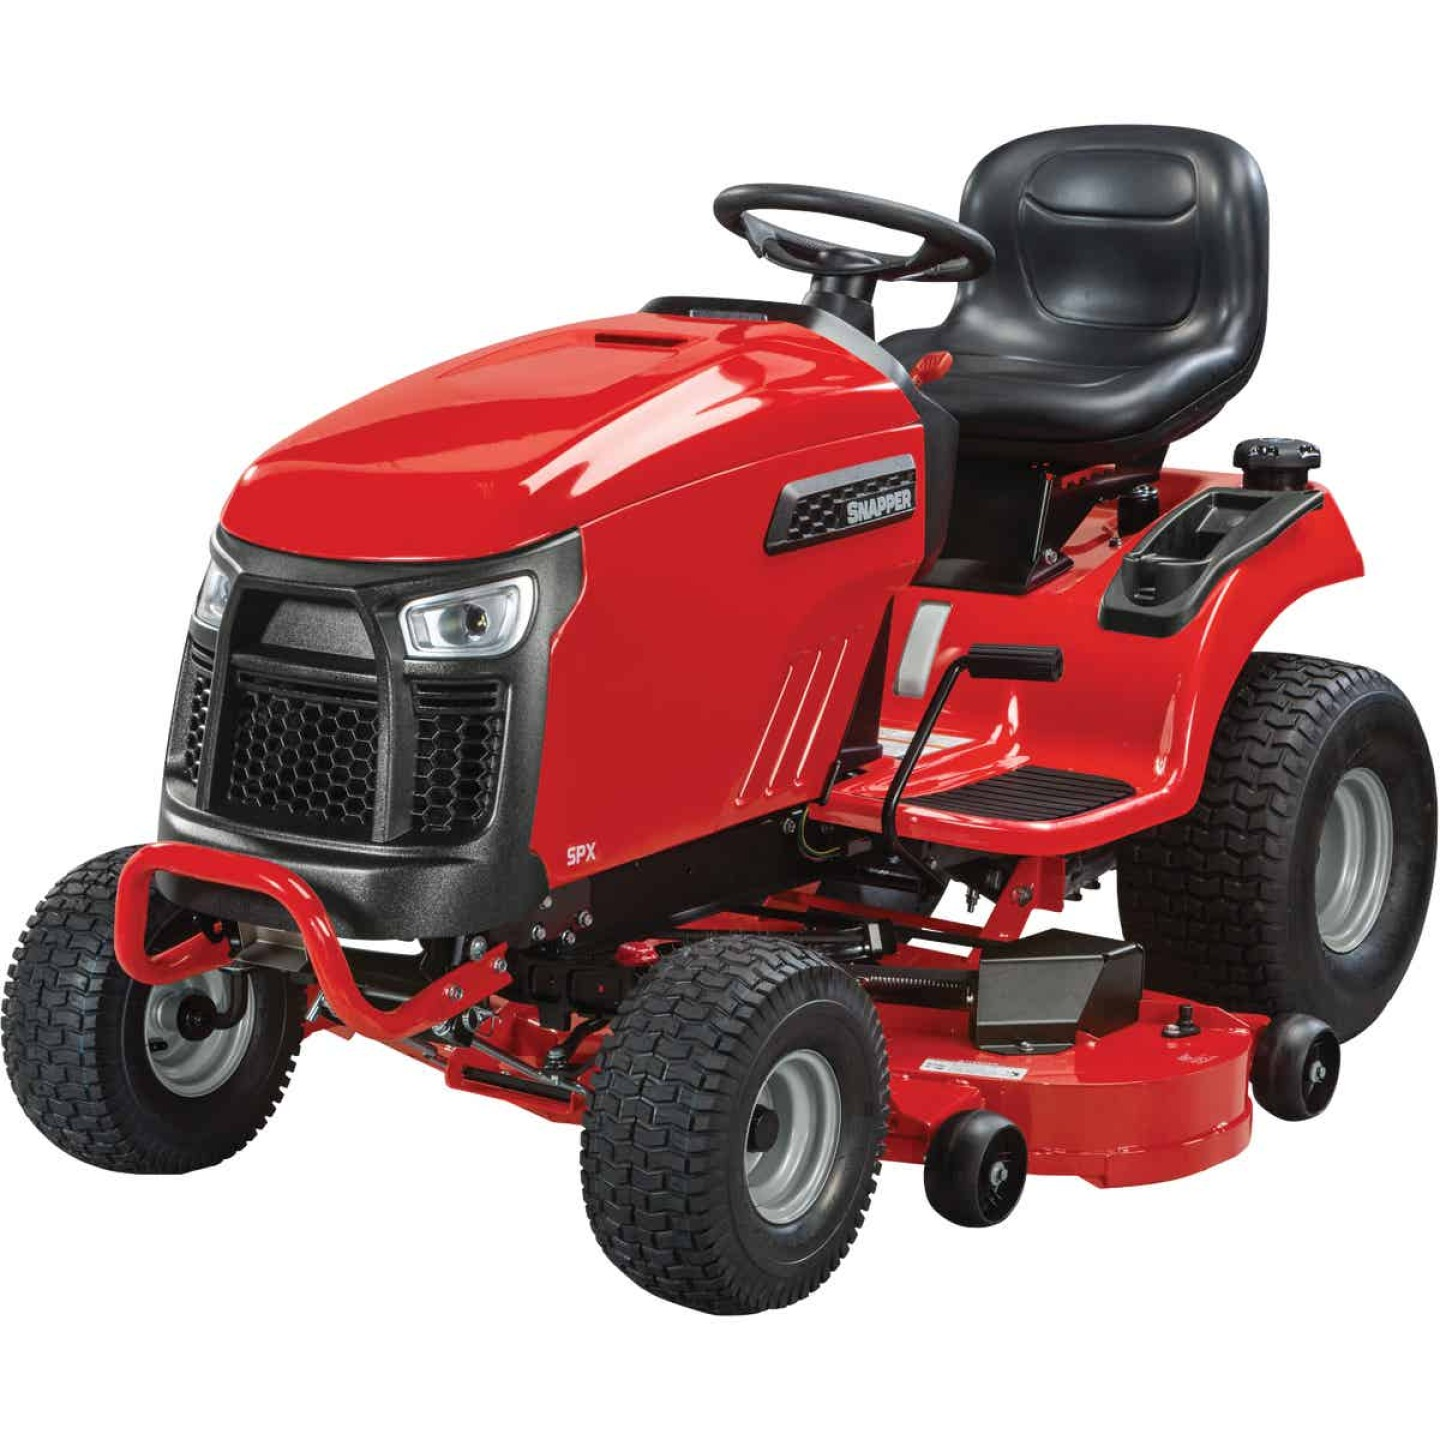 Snapper SPX 48 In. 25 HP Briggs & Stratton Lawn Tractor Image 1